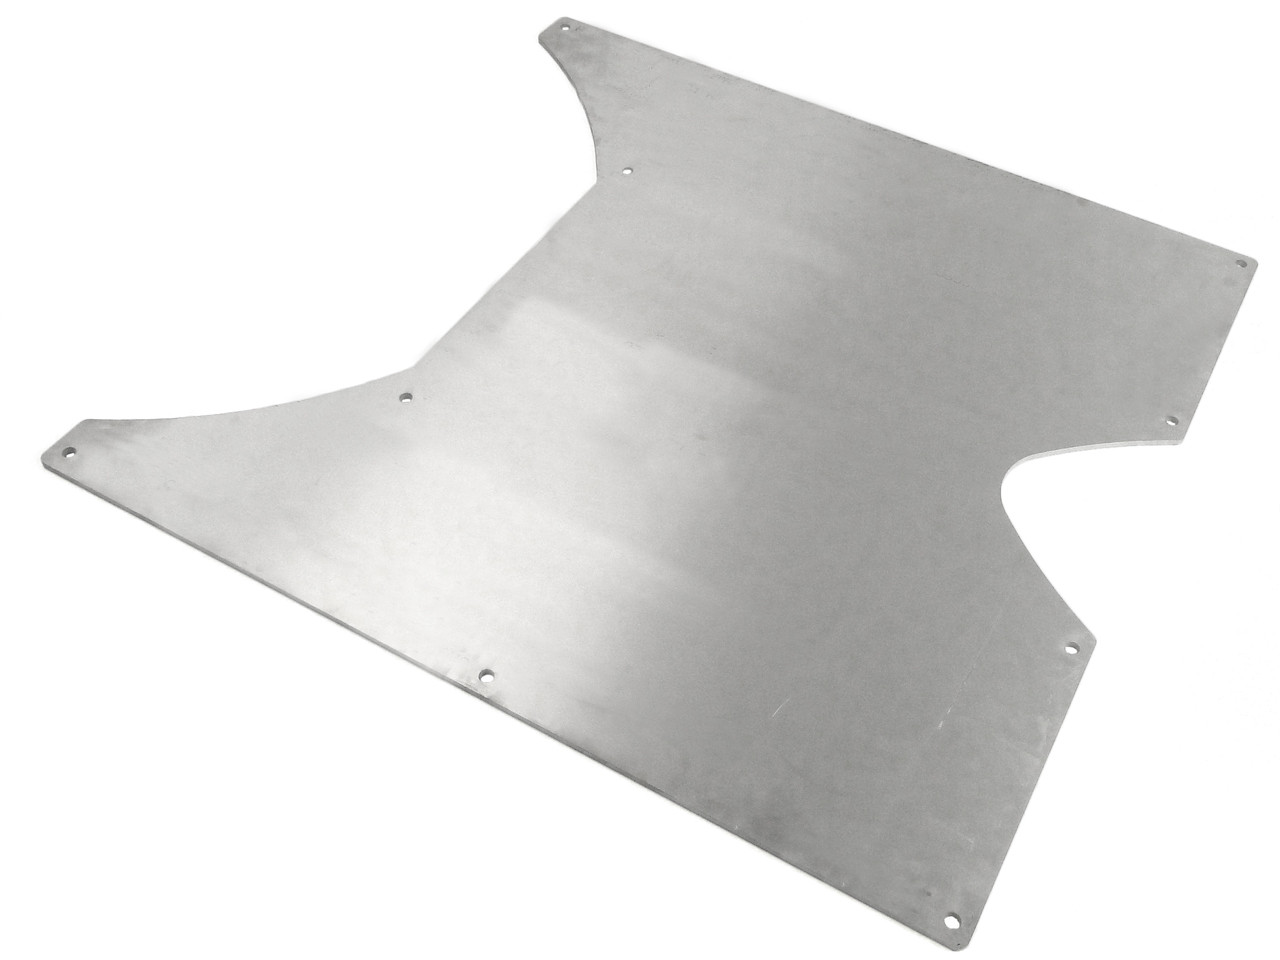 GenRight's completely flat 6061 Aluminum belly skid plate for the Jeep JKU